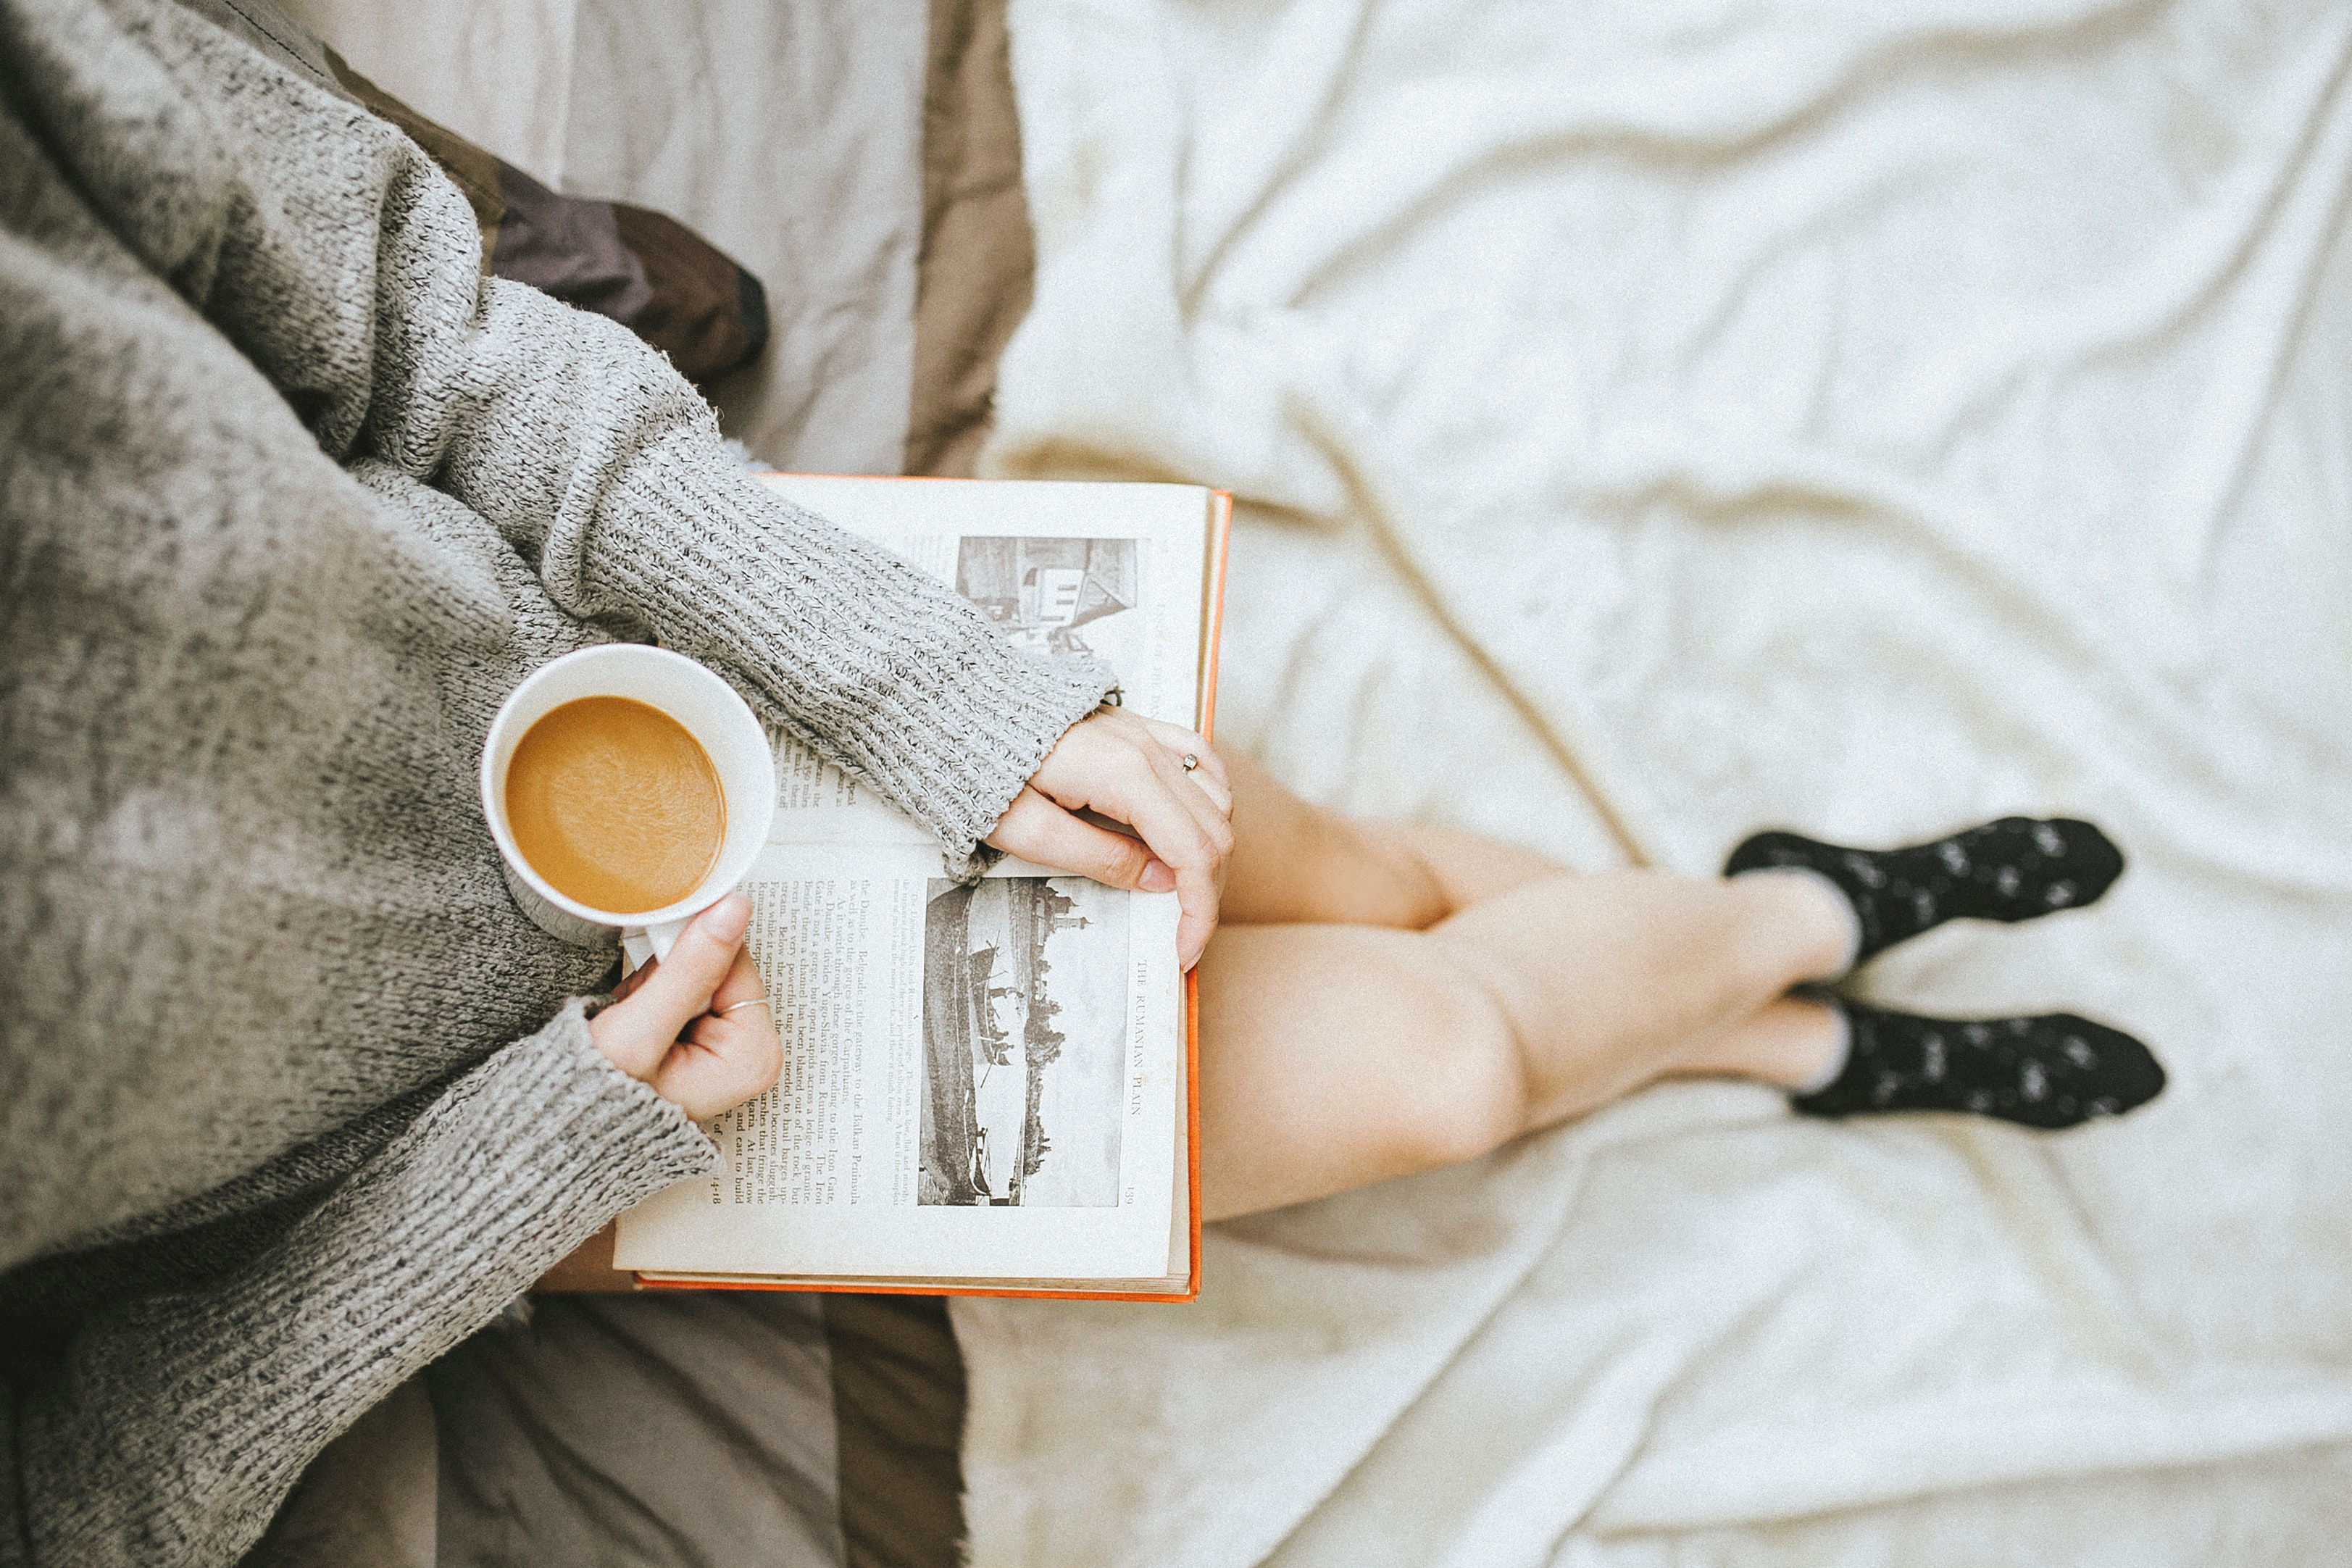 woman holding a coffee mug and reading a book